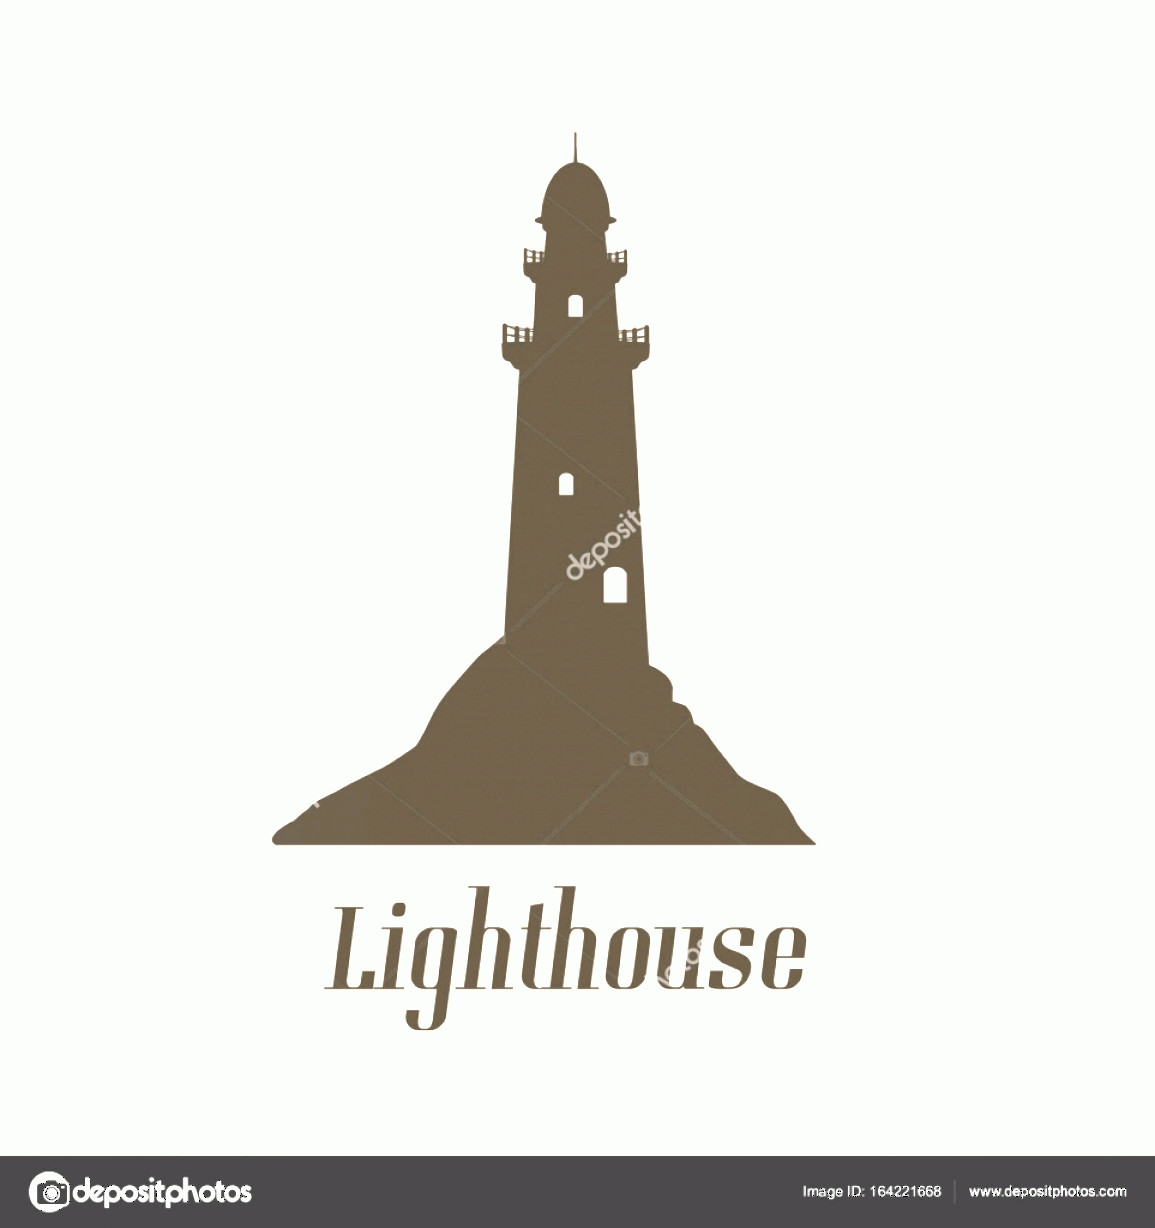 Lighthouse Silhouette Vector Logo: Stock Illustration Vintage Style Poster With Lighthouse